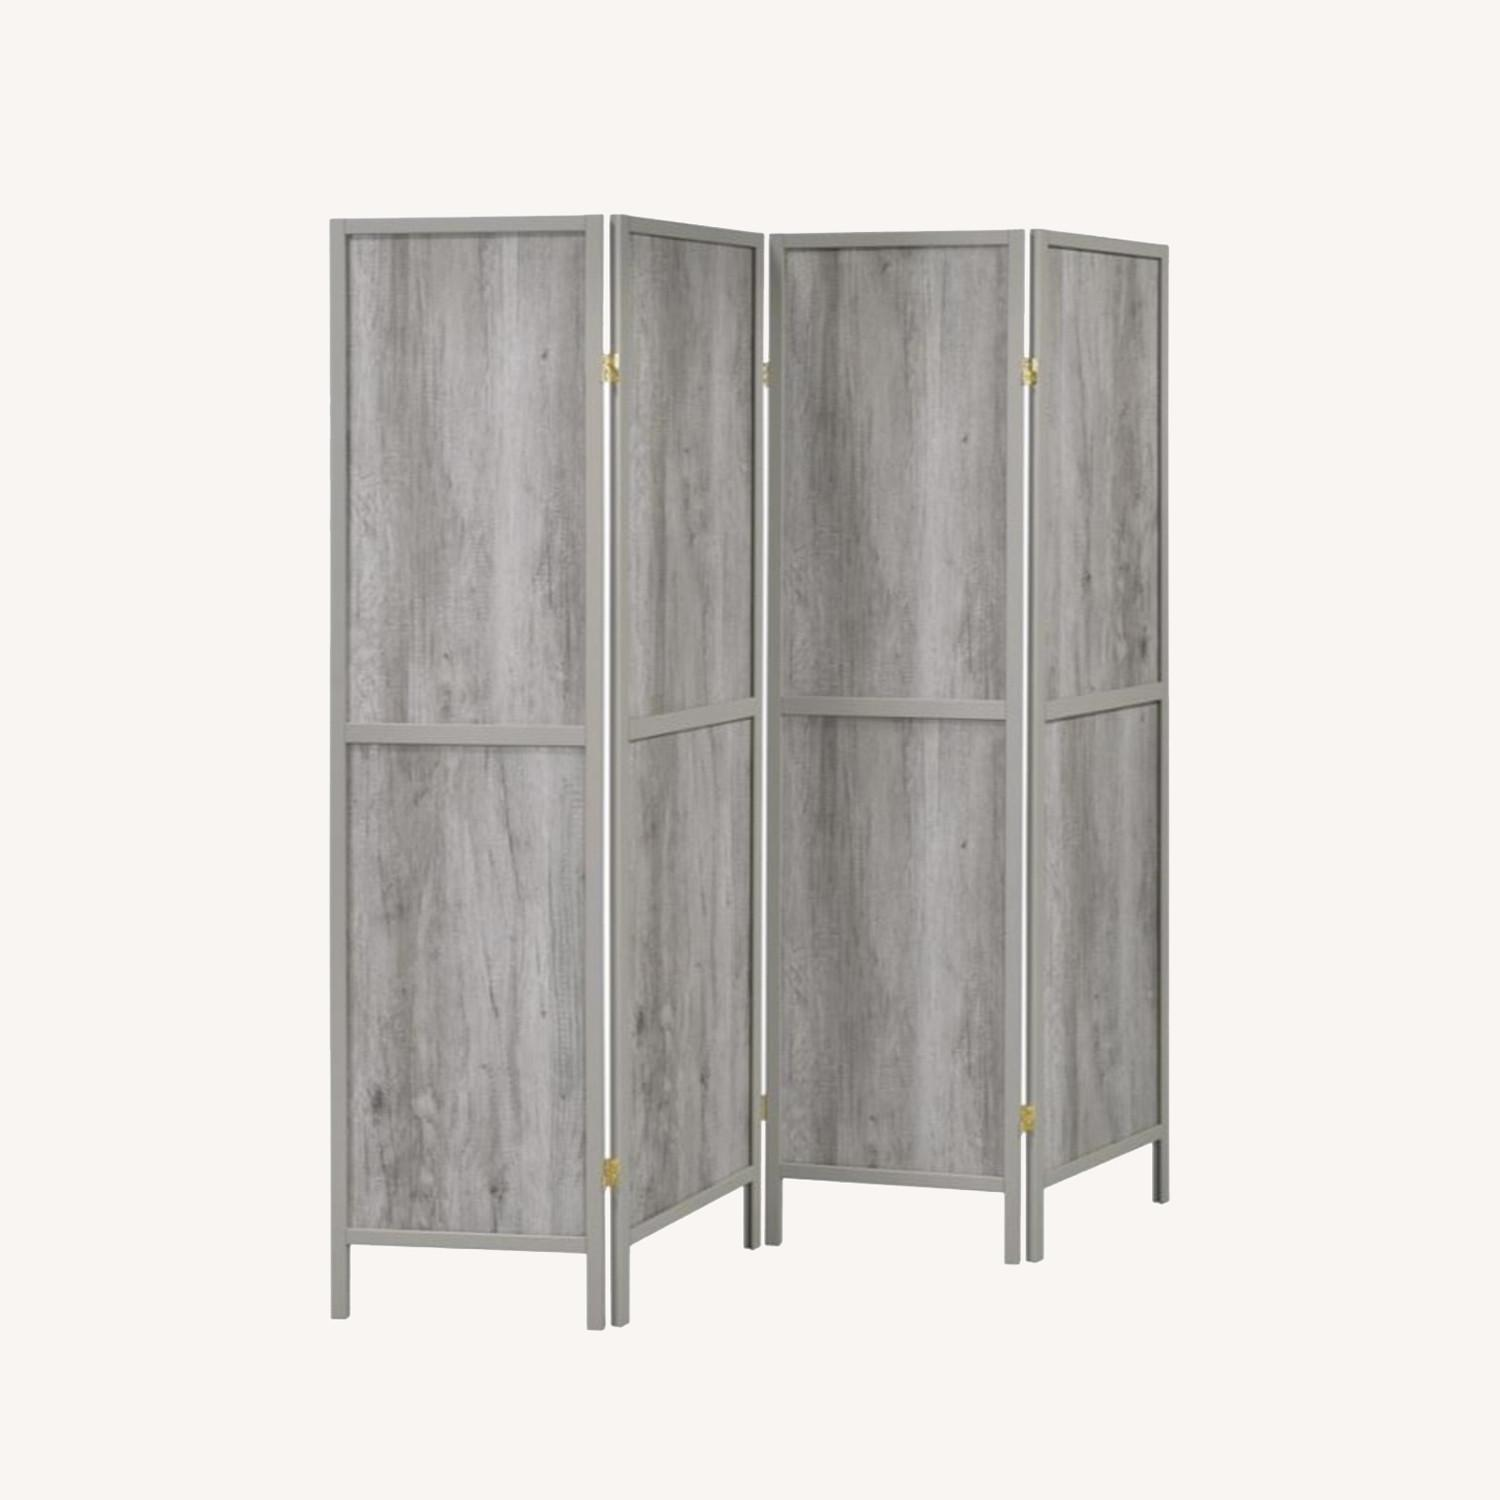 4-Panel Screen In Grey Driftwood & Grey Wood Frame - image-6